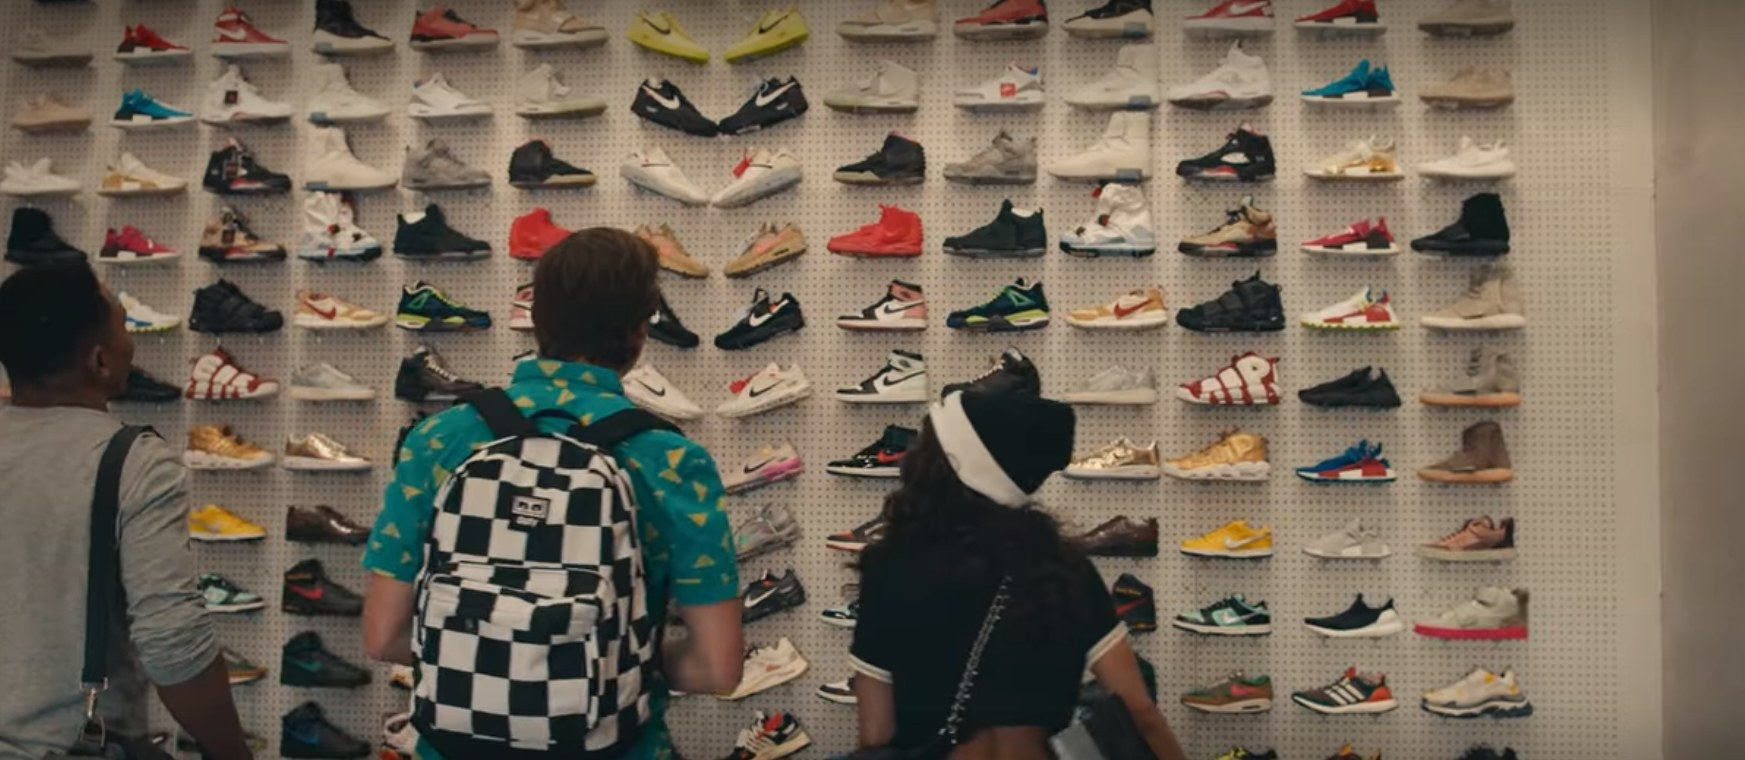 A still image of three people with their backs to the camera standing in front of a wall of sneakers.